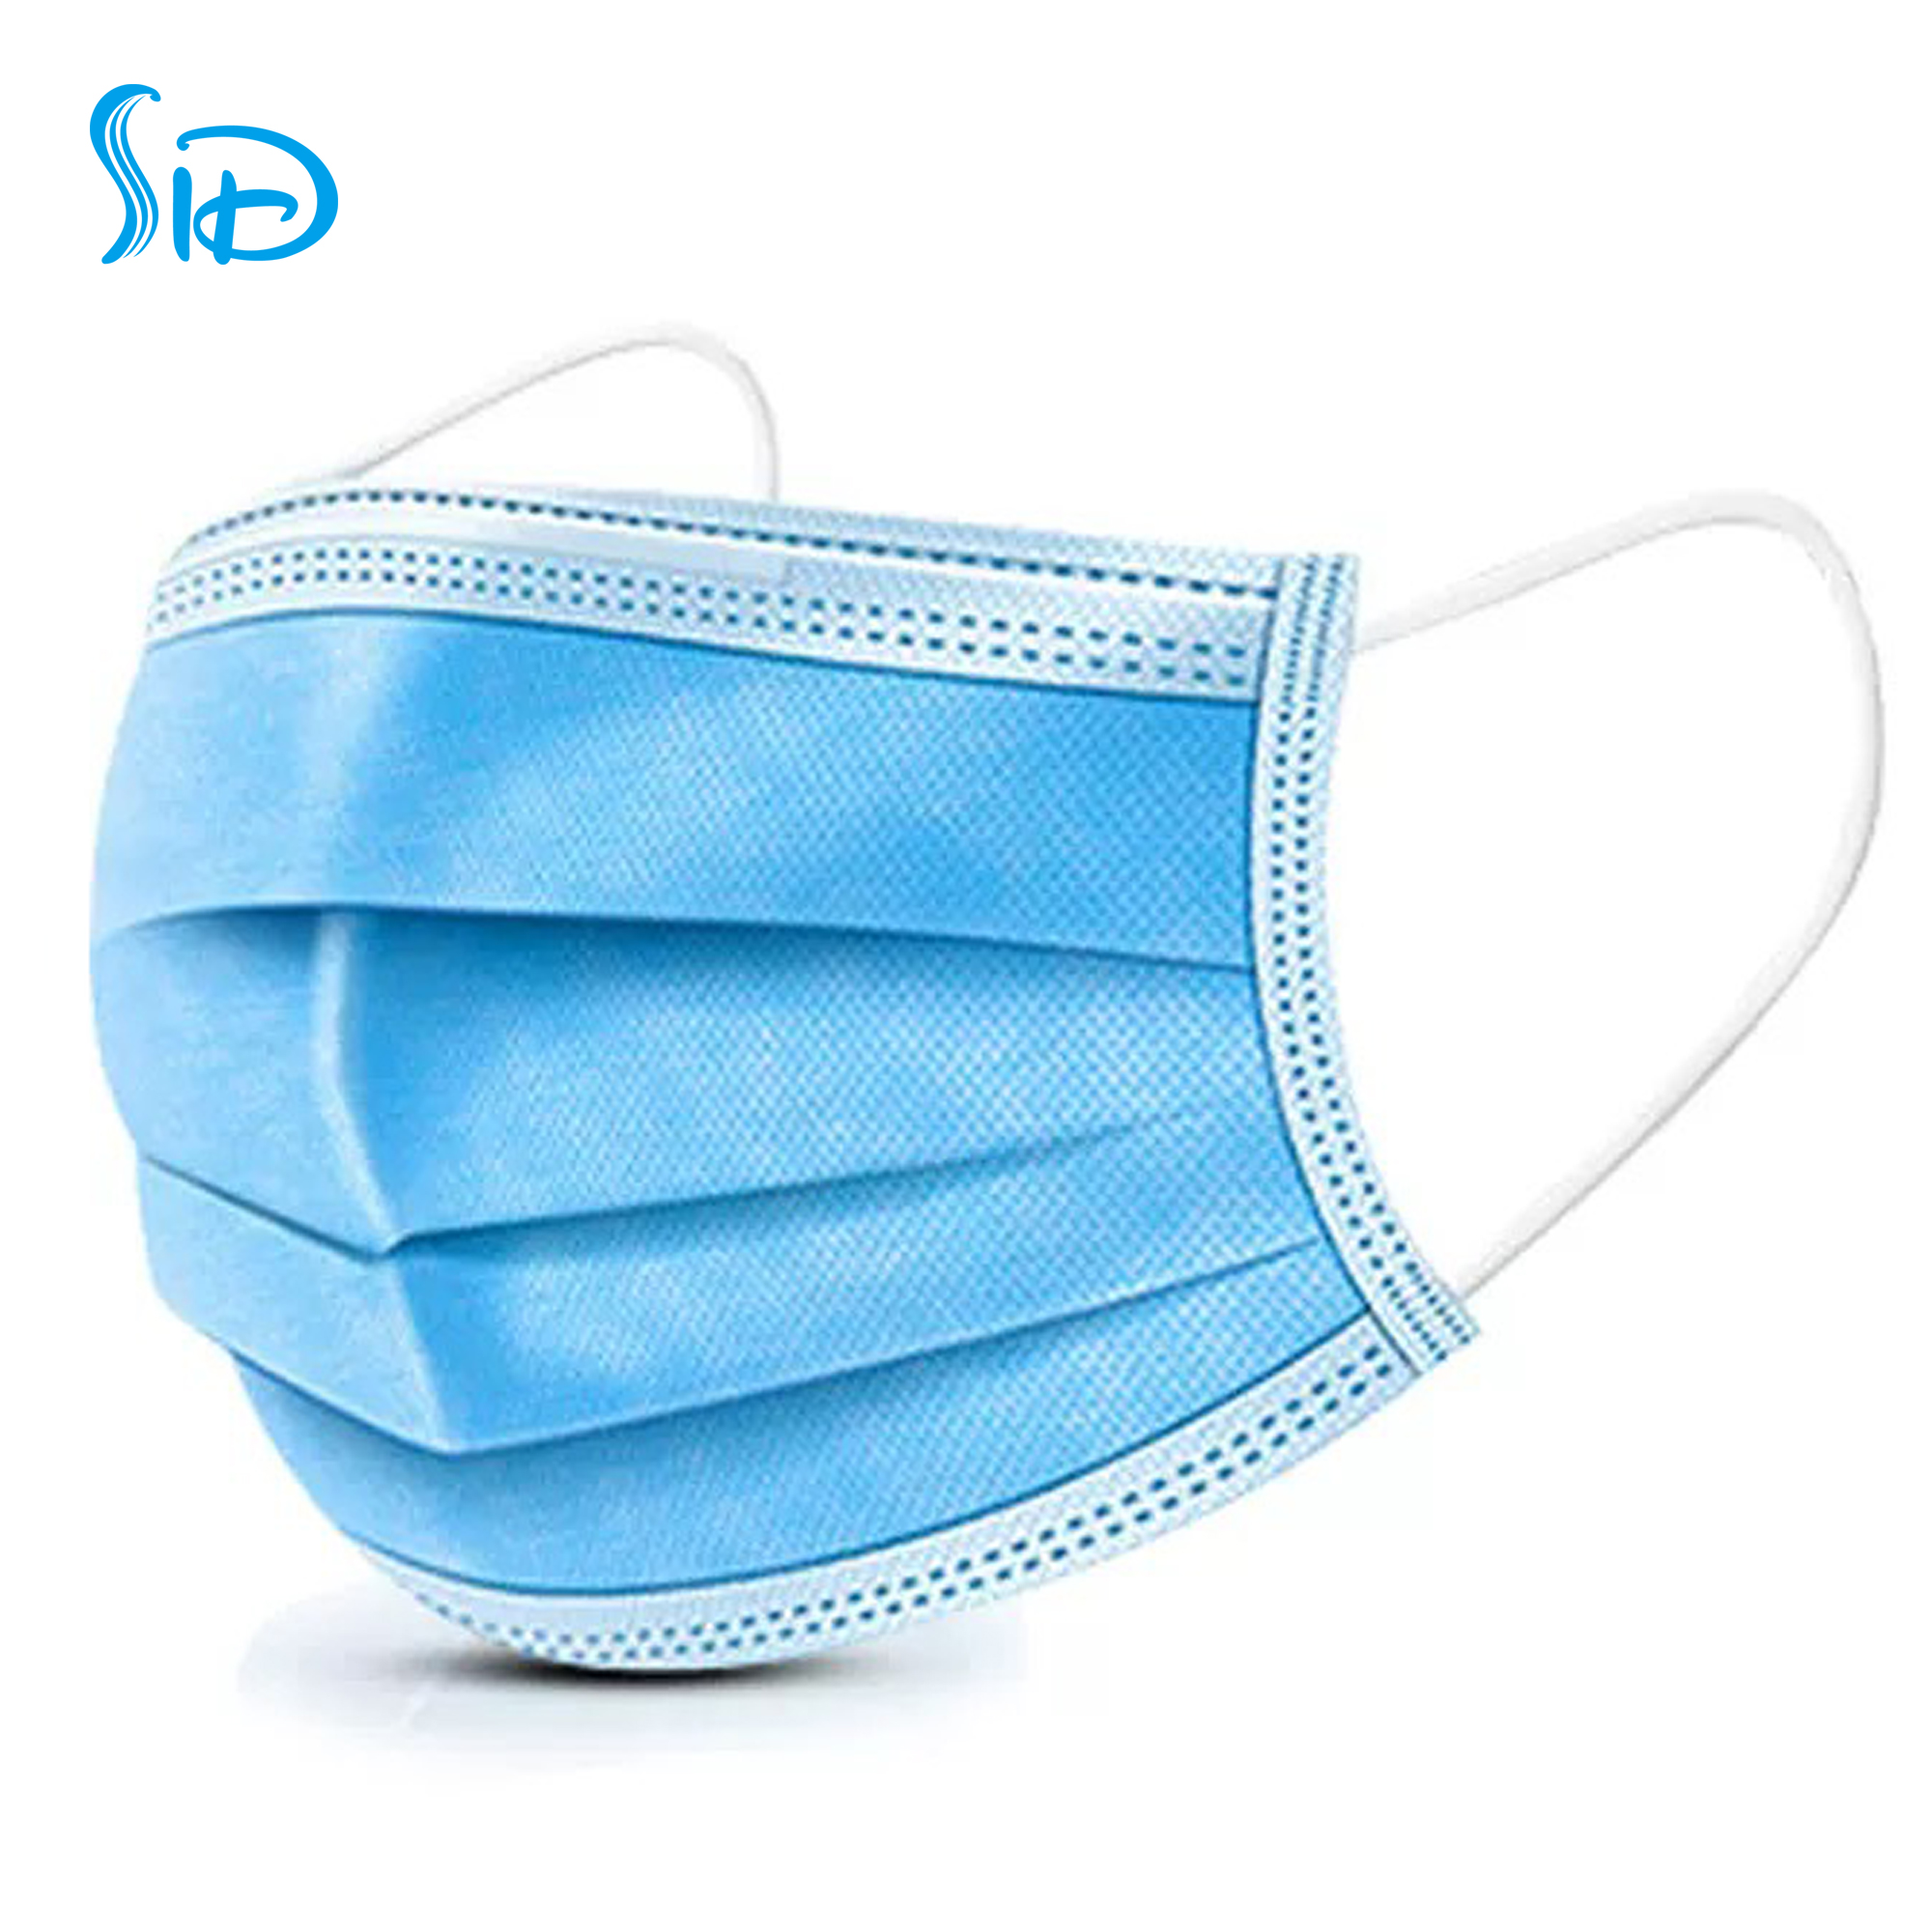 KN95/3D/disposable face mask Non-medical mask